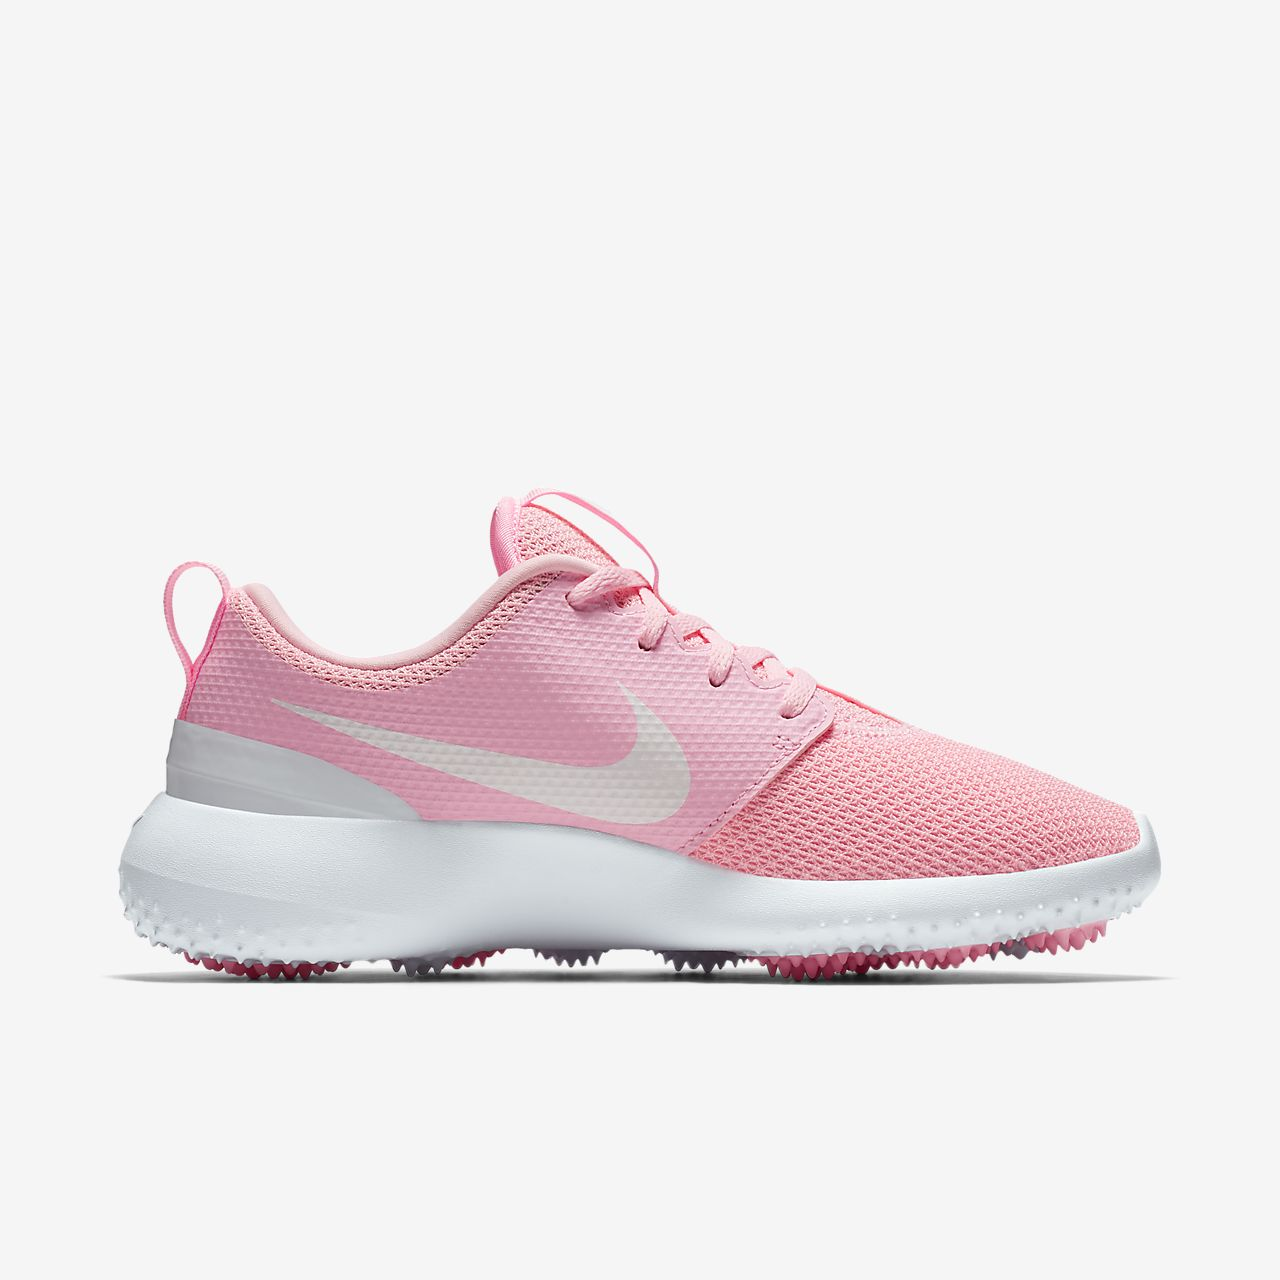 separation shoes 83416 b5ce3 nike roshes women